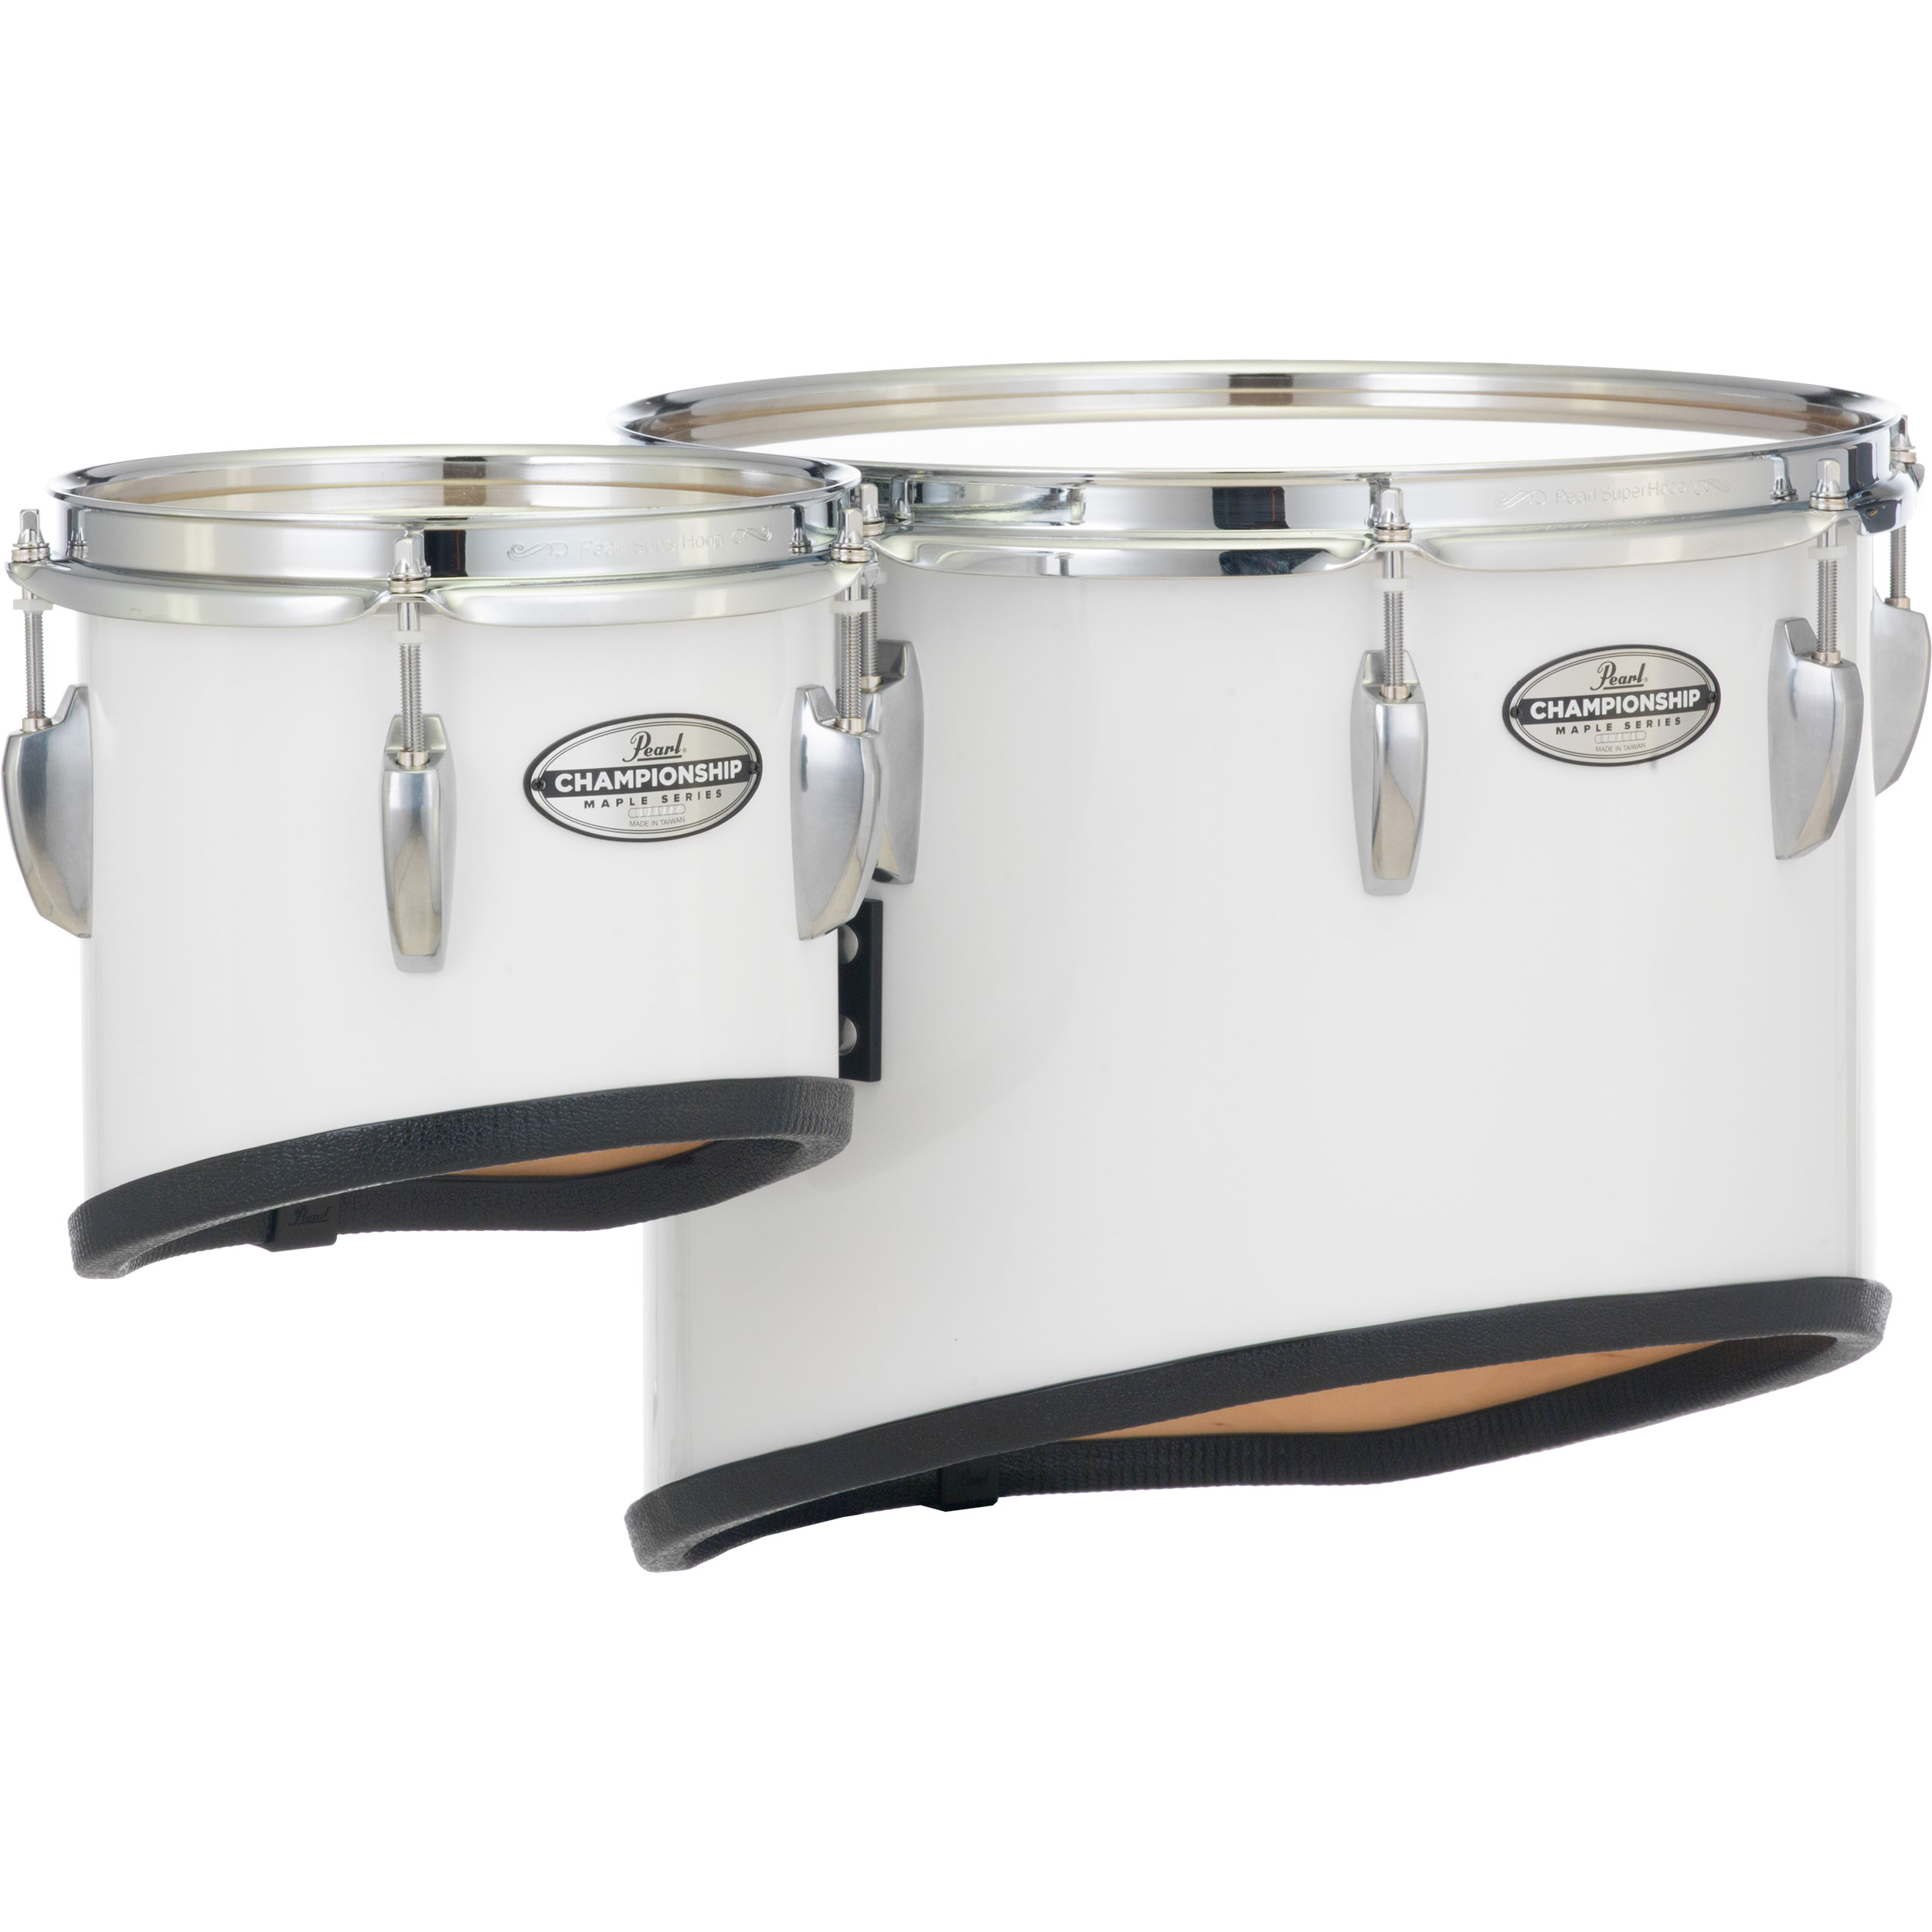 "Pearl 14"" x 13"" Championship Maple Sonic Cut Single Tenor with Mounts for CXS1 Carrier with Chrome Hardware (Specify Finish)"